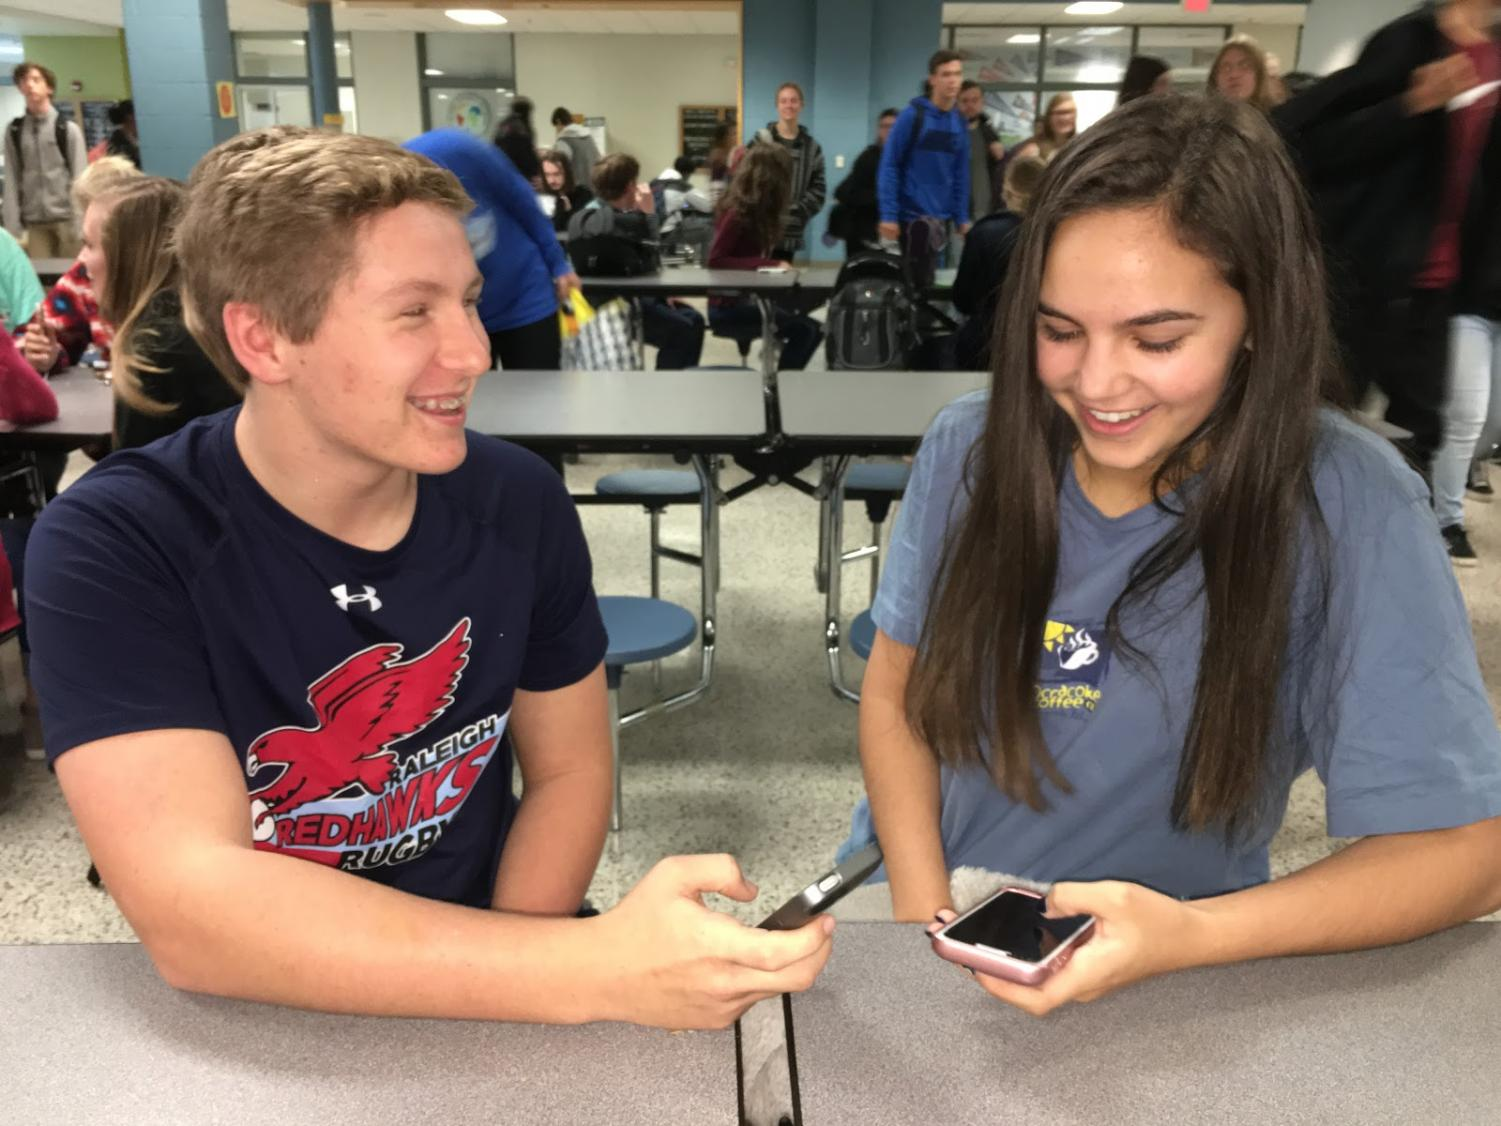 Enjoying each others company, Elizabeth Iager and AJ Kurke try to hold a conversation with each other without being distracted by their phones.